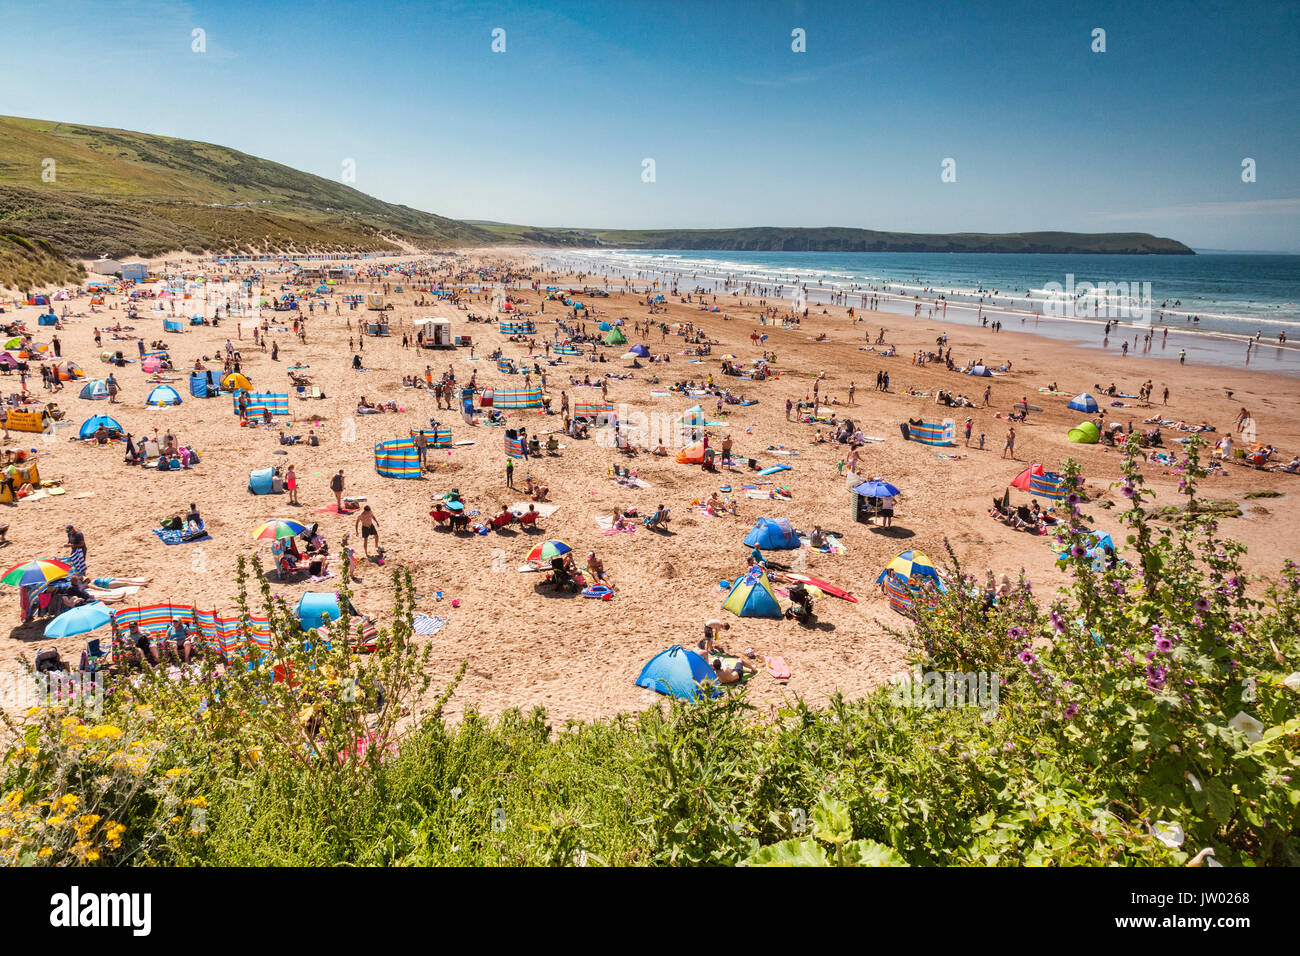 17 June 2017: Woolacombe, North Devon, England, UK - The busy beach on one of the hottest days of the year. - Stock Image